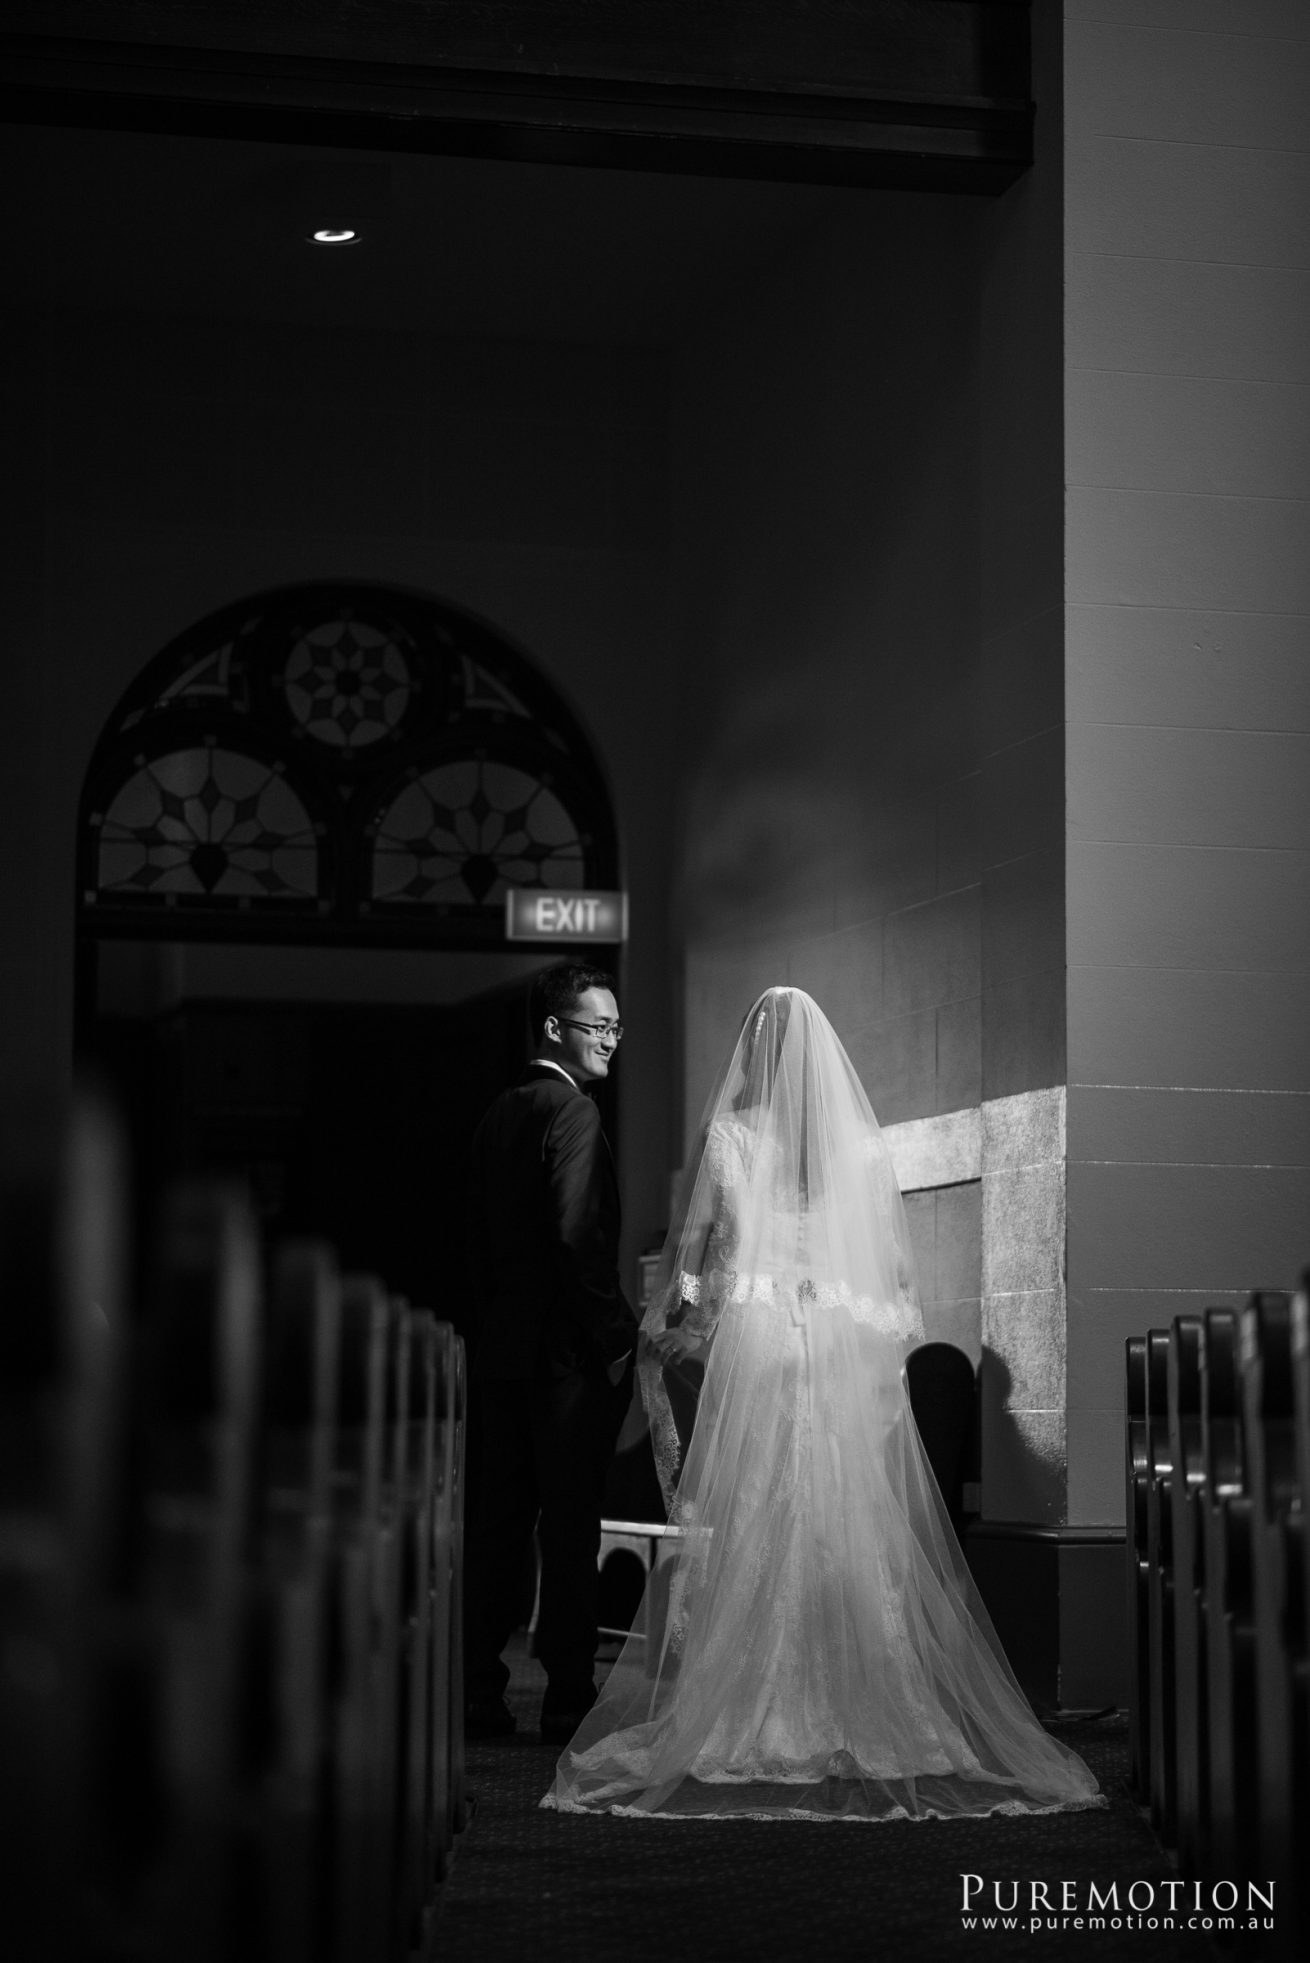 190413 Puremotion Wedding Photography Brisbane Tabernacle Baptist Church Blackbird Alex Huang PeggyAaron_post-0066